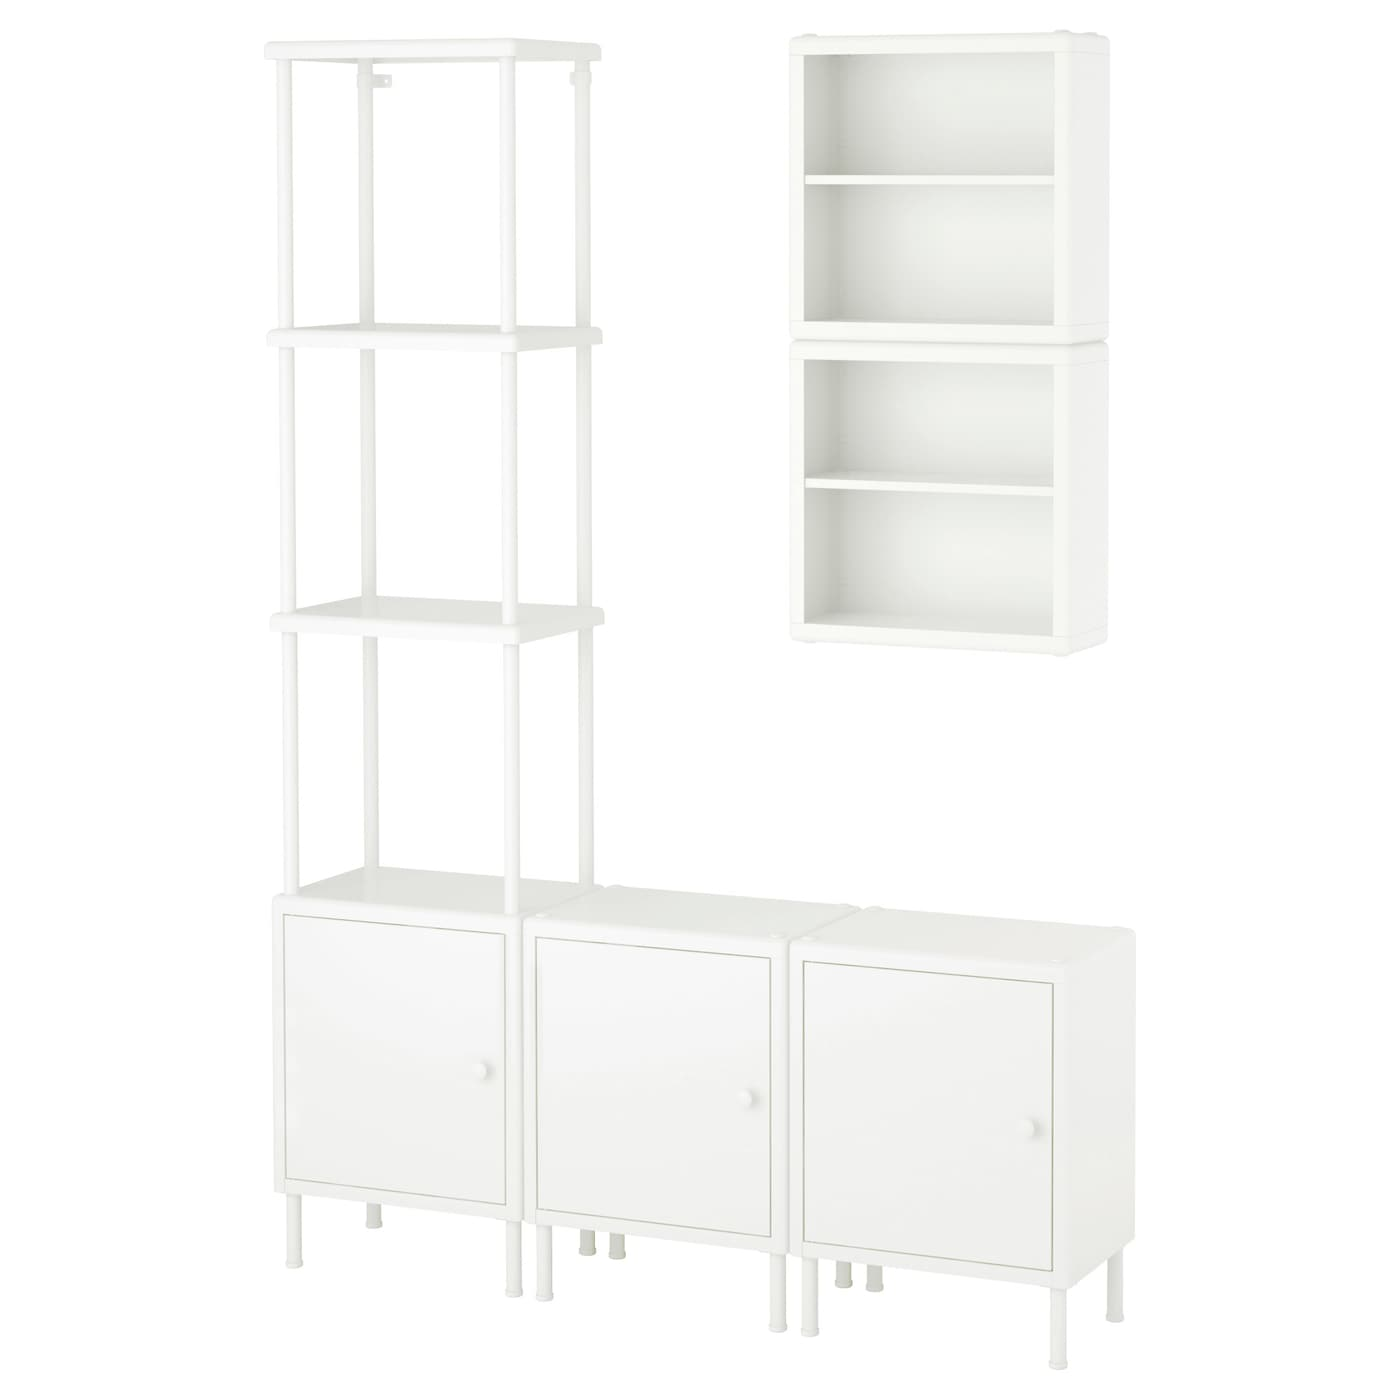 Ikea Dynan Shelving Unit With 3 Cabinets Perfect In A Small Bathroom